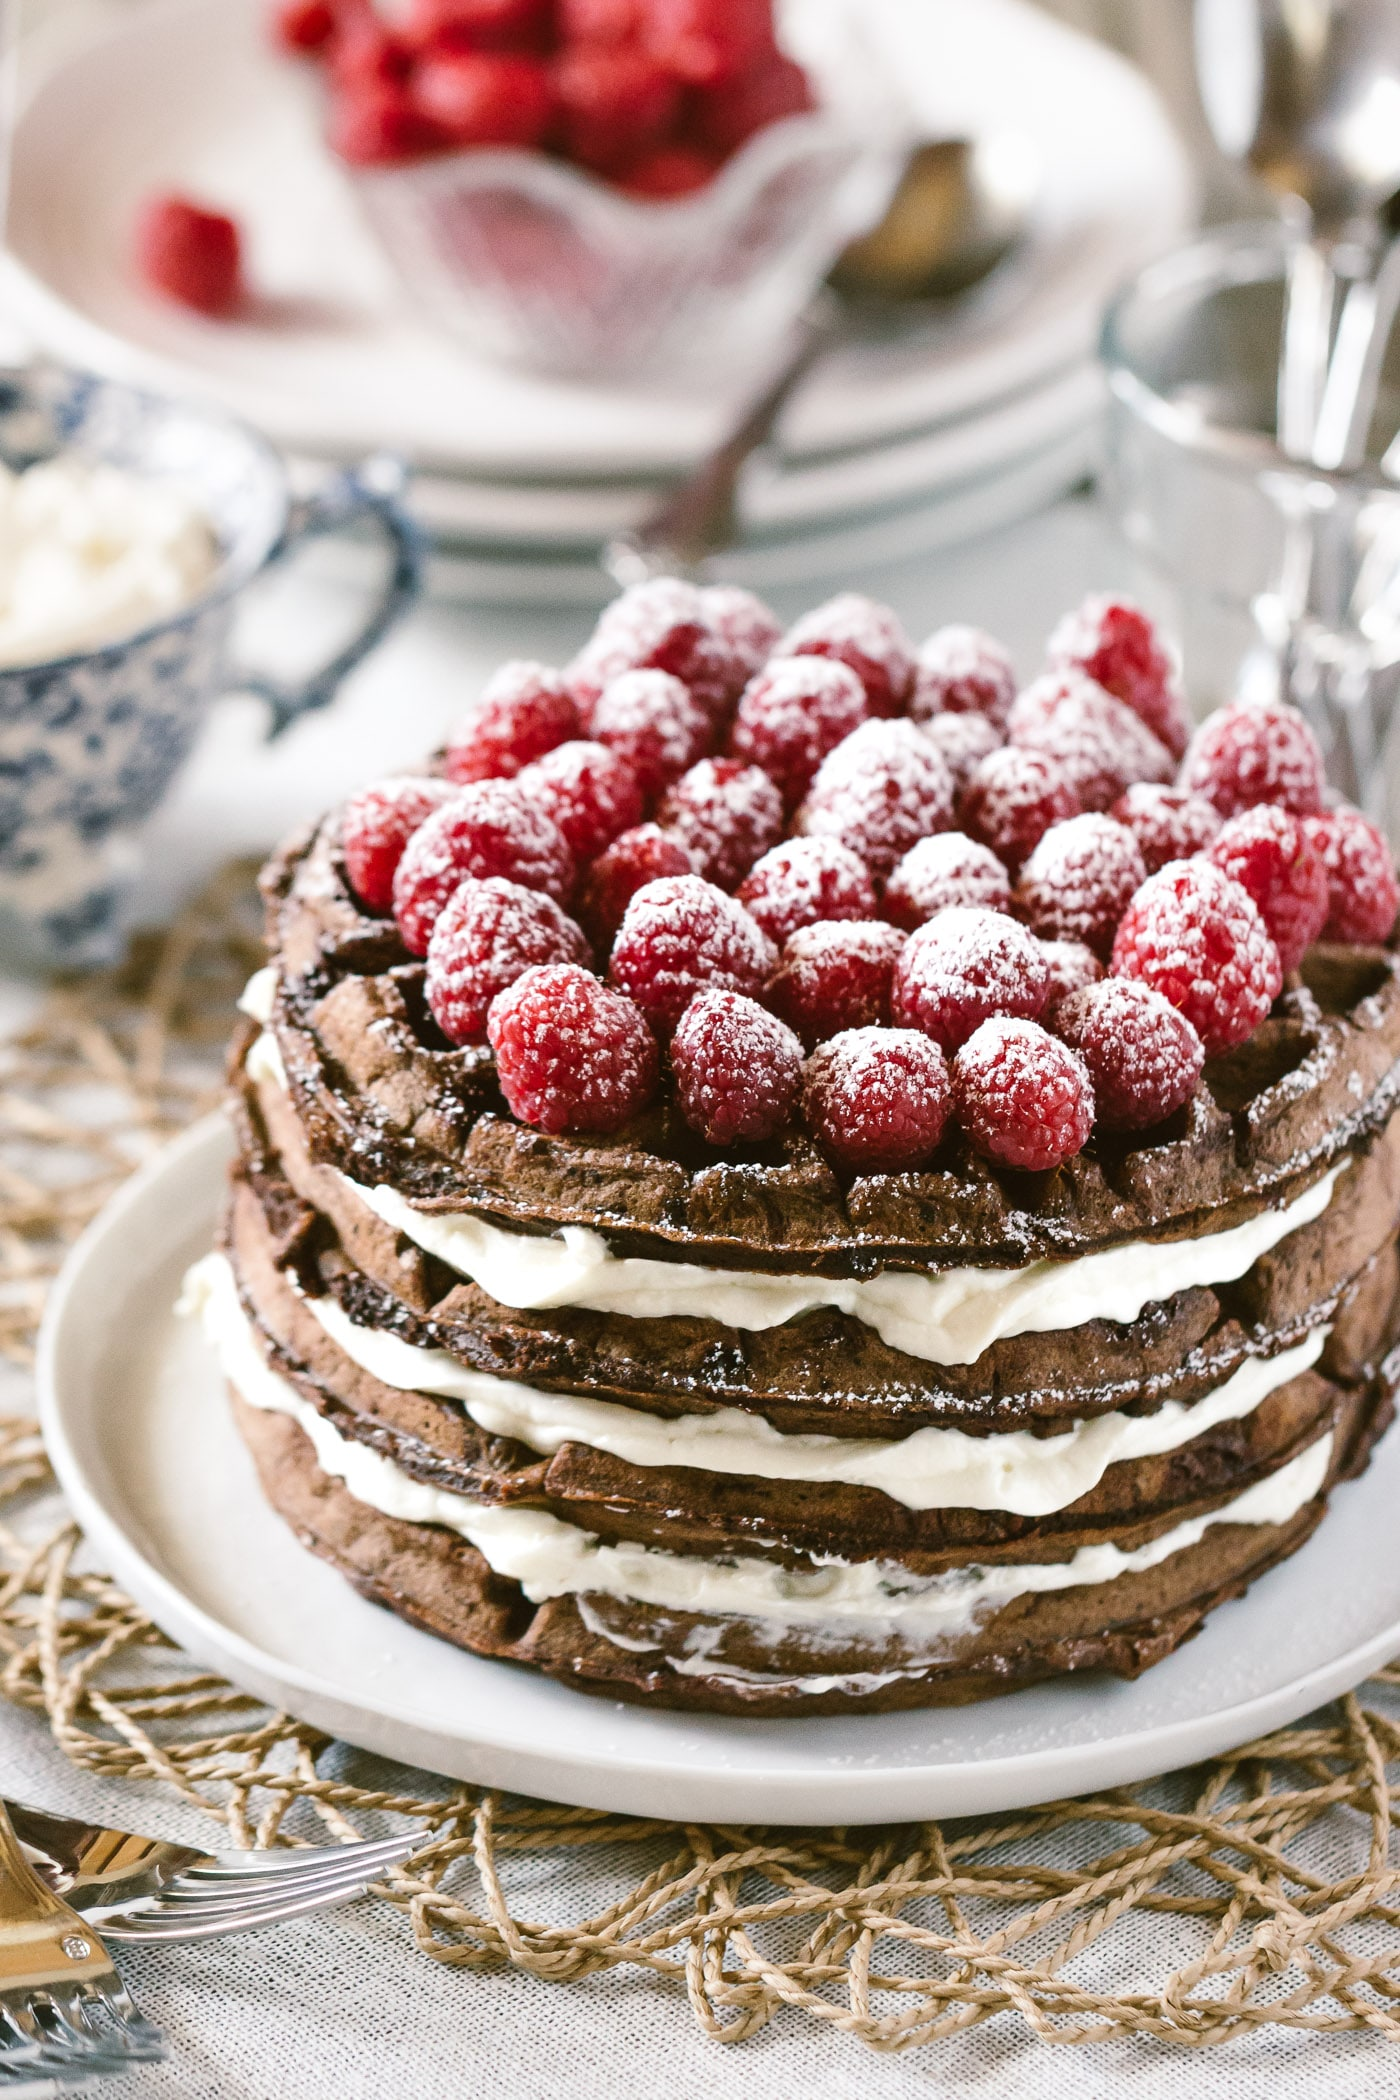 Foolproof Living's Best Chocolate Recipes For The Holiday Season: Dark Chocolate Waffle Cake with Mascarpone Whipped Cream topped off with raspberries - Photographed from the front view.